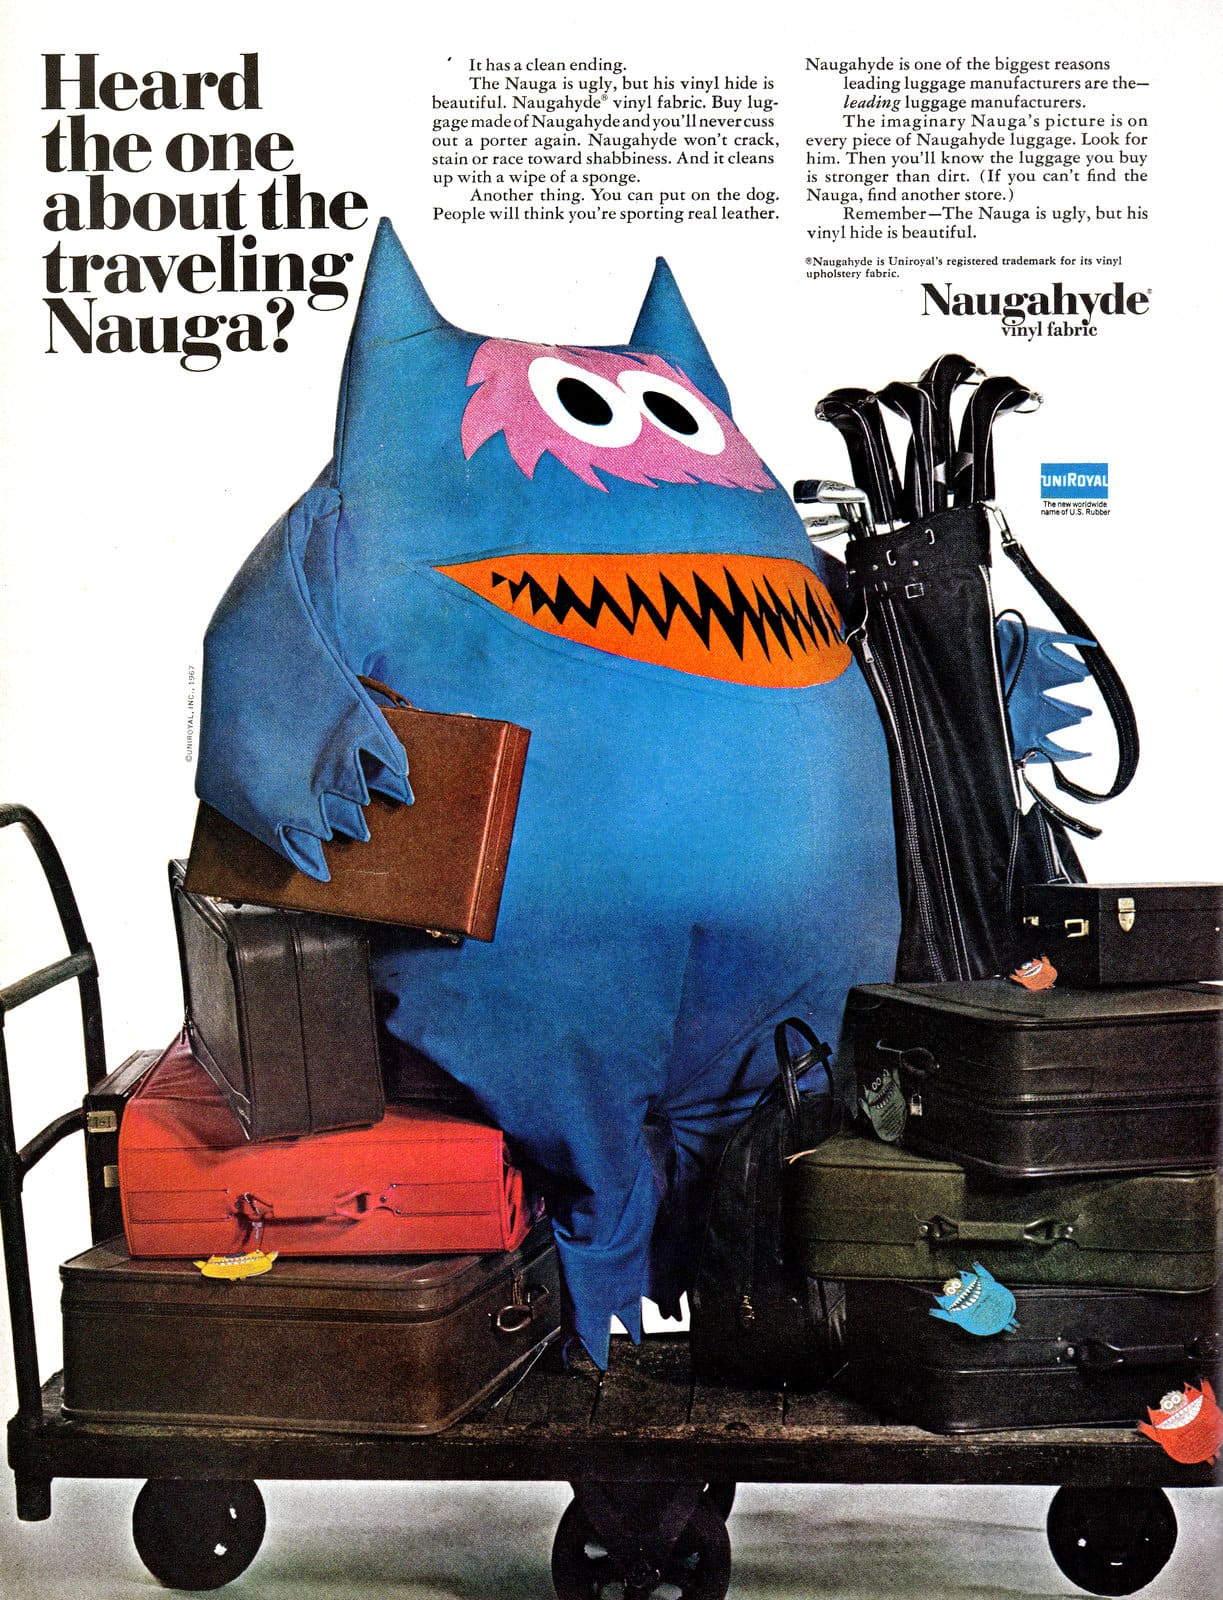 Heard the one about the traveling Nauga (1967)